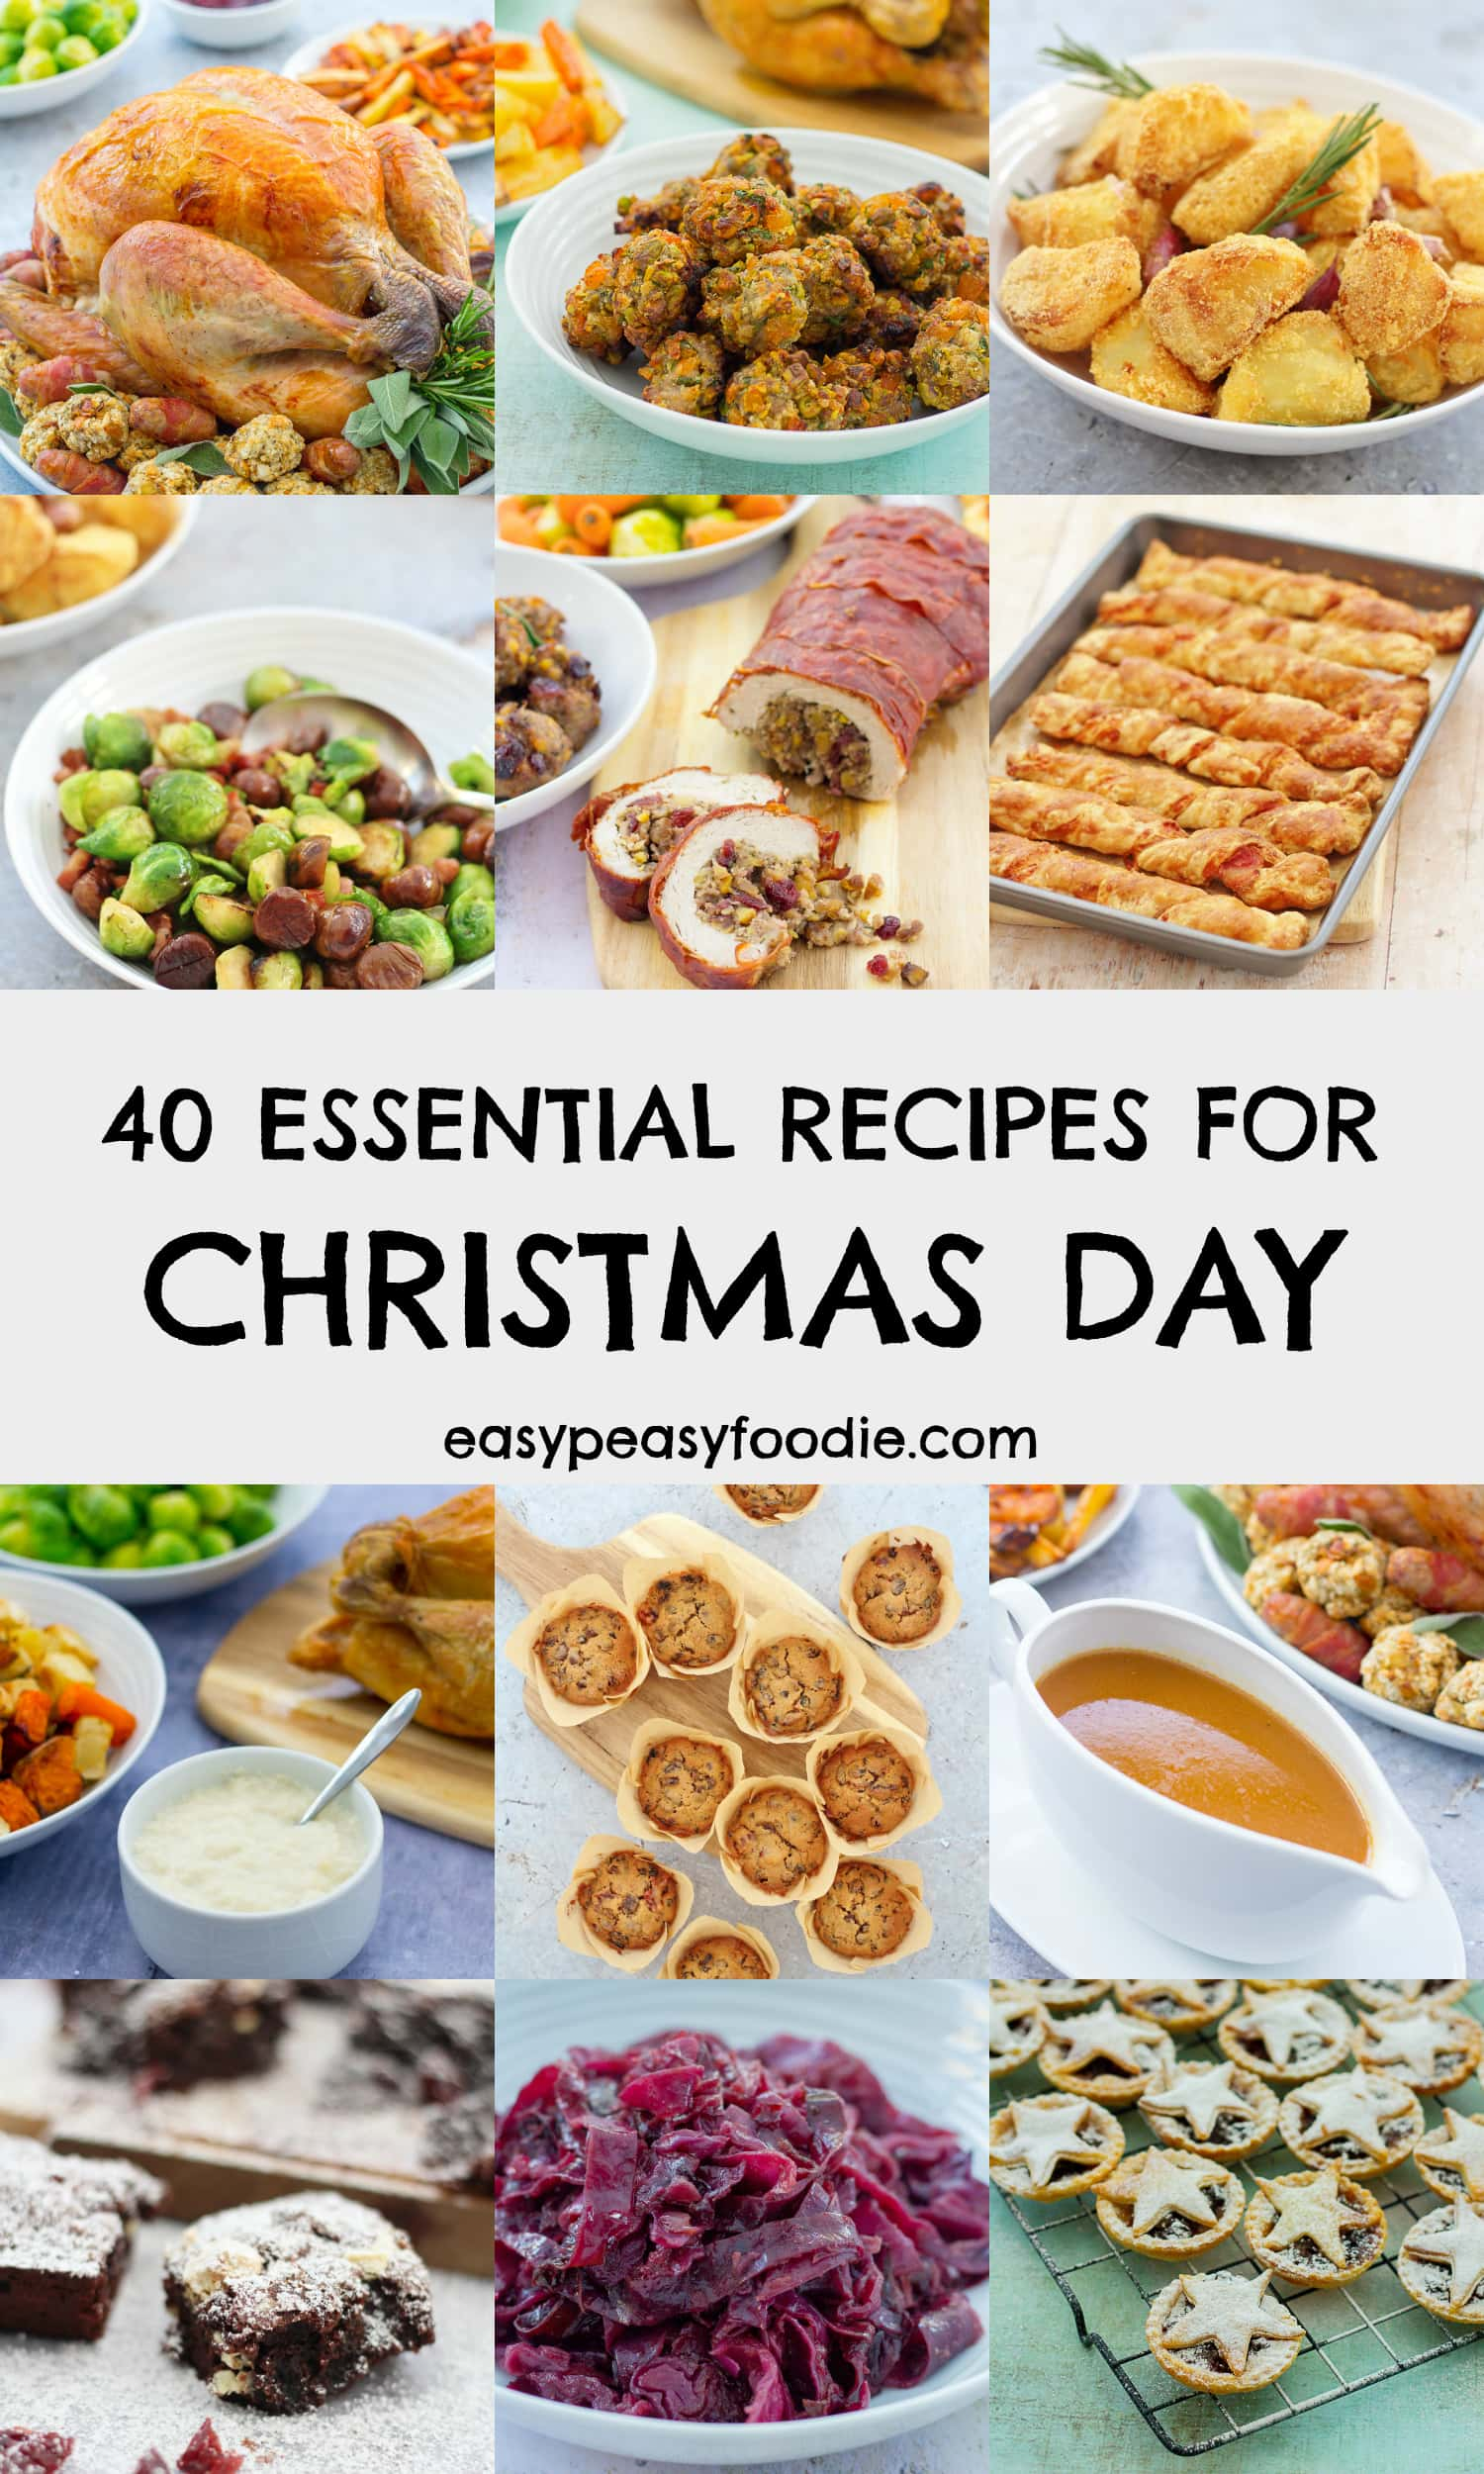 40 Essential Recipes For Christmas Day - pinnable image for Pinterest